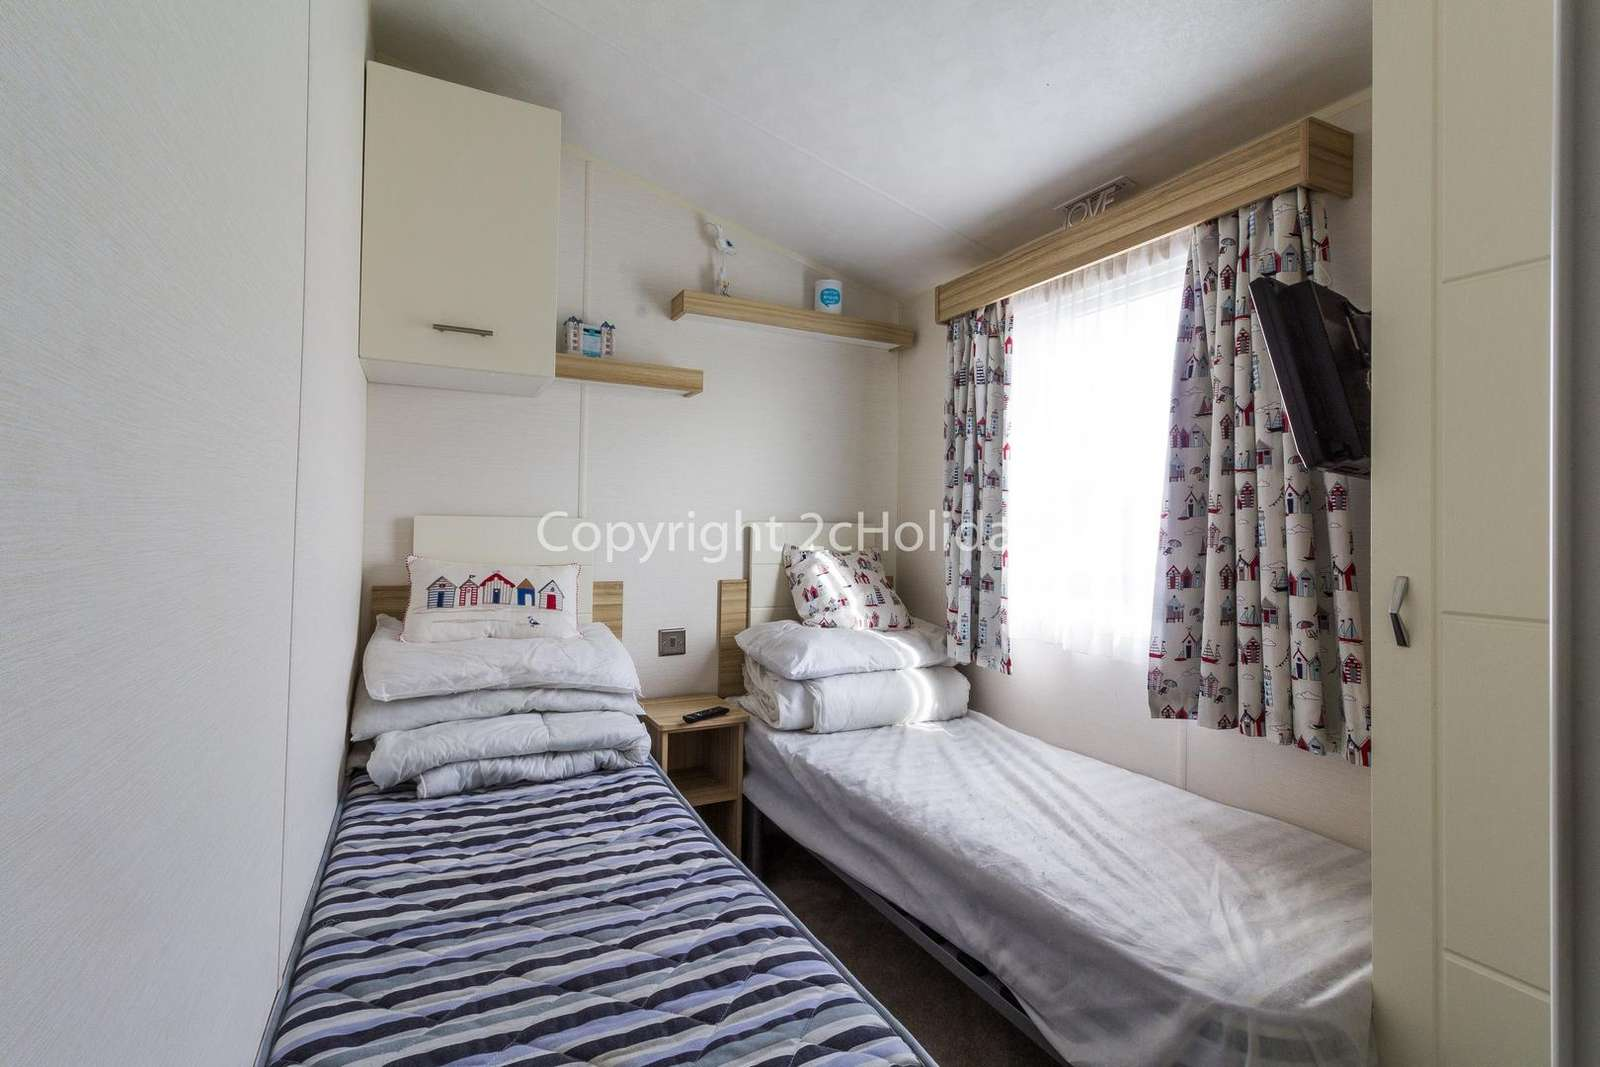 A cosy twin bedroom plenty with of storage!